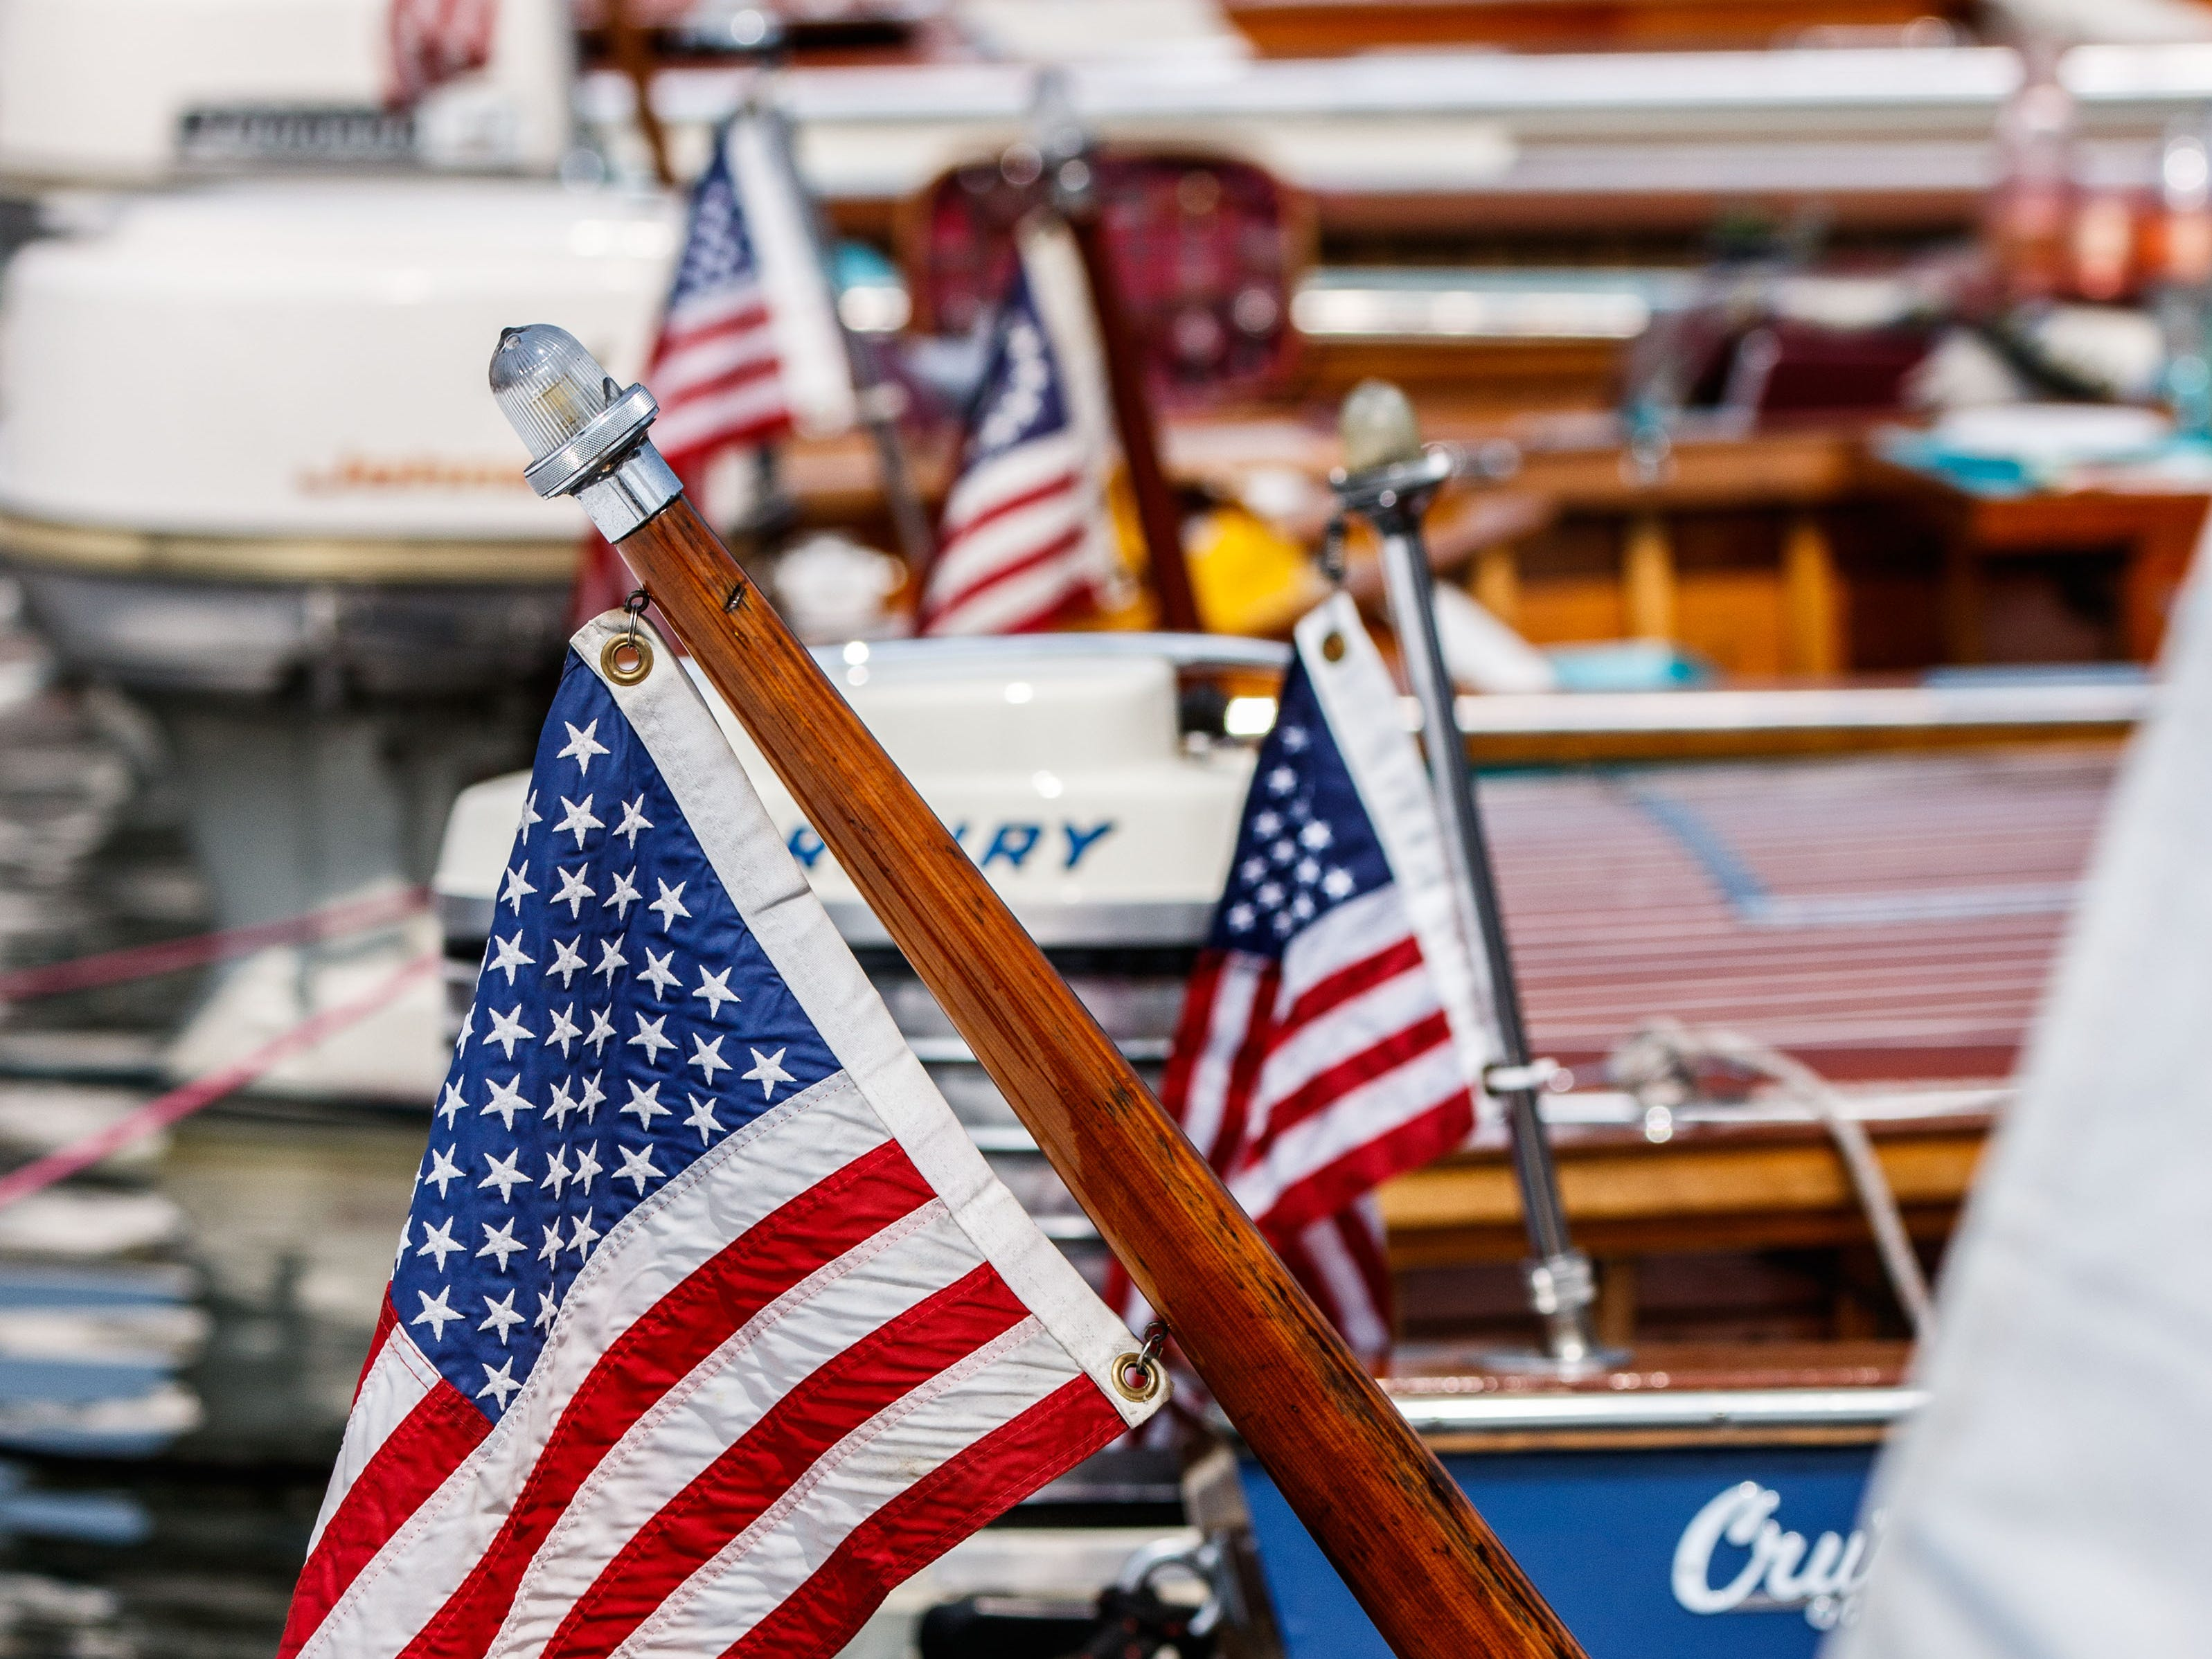 Beautifully restored vintage boats glisten in the sun during the 14th annual Pewaukee Antique & Classic Boat Show & Vintage Car Show on Saturday, August 18, 2018. The event, hosted by the Glacier Lakes Chapter of the Antique and Classic Boat Society, features antique and classic boats, classic cars, vintage big wheel bicycles, live music, childrenÕs activities and more.